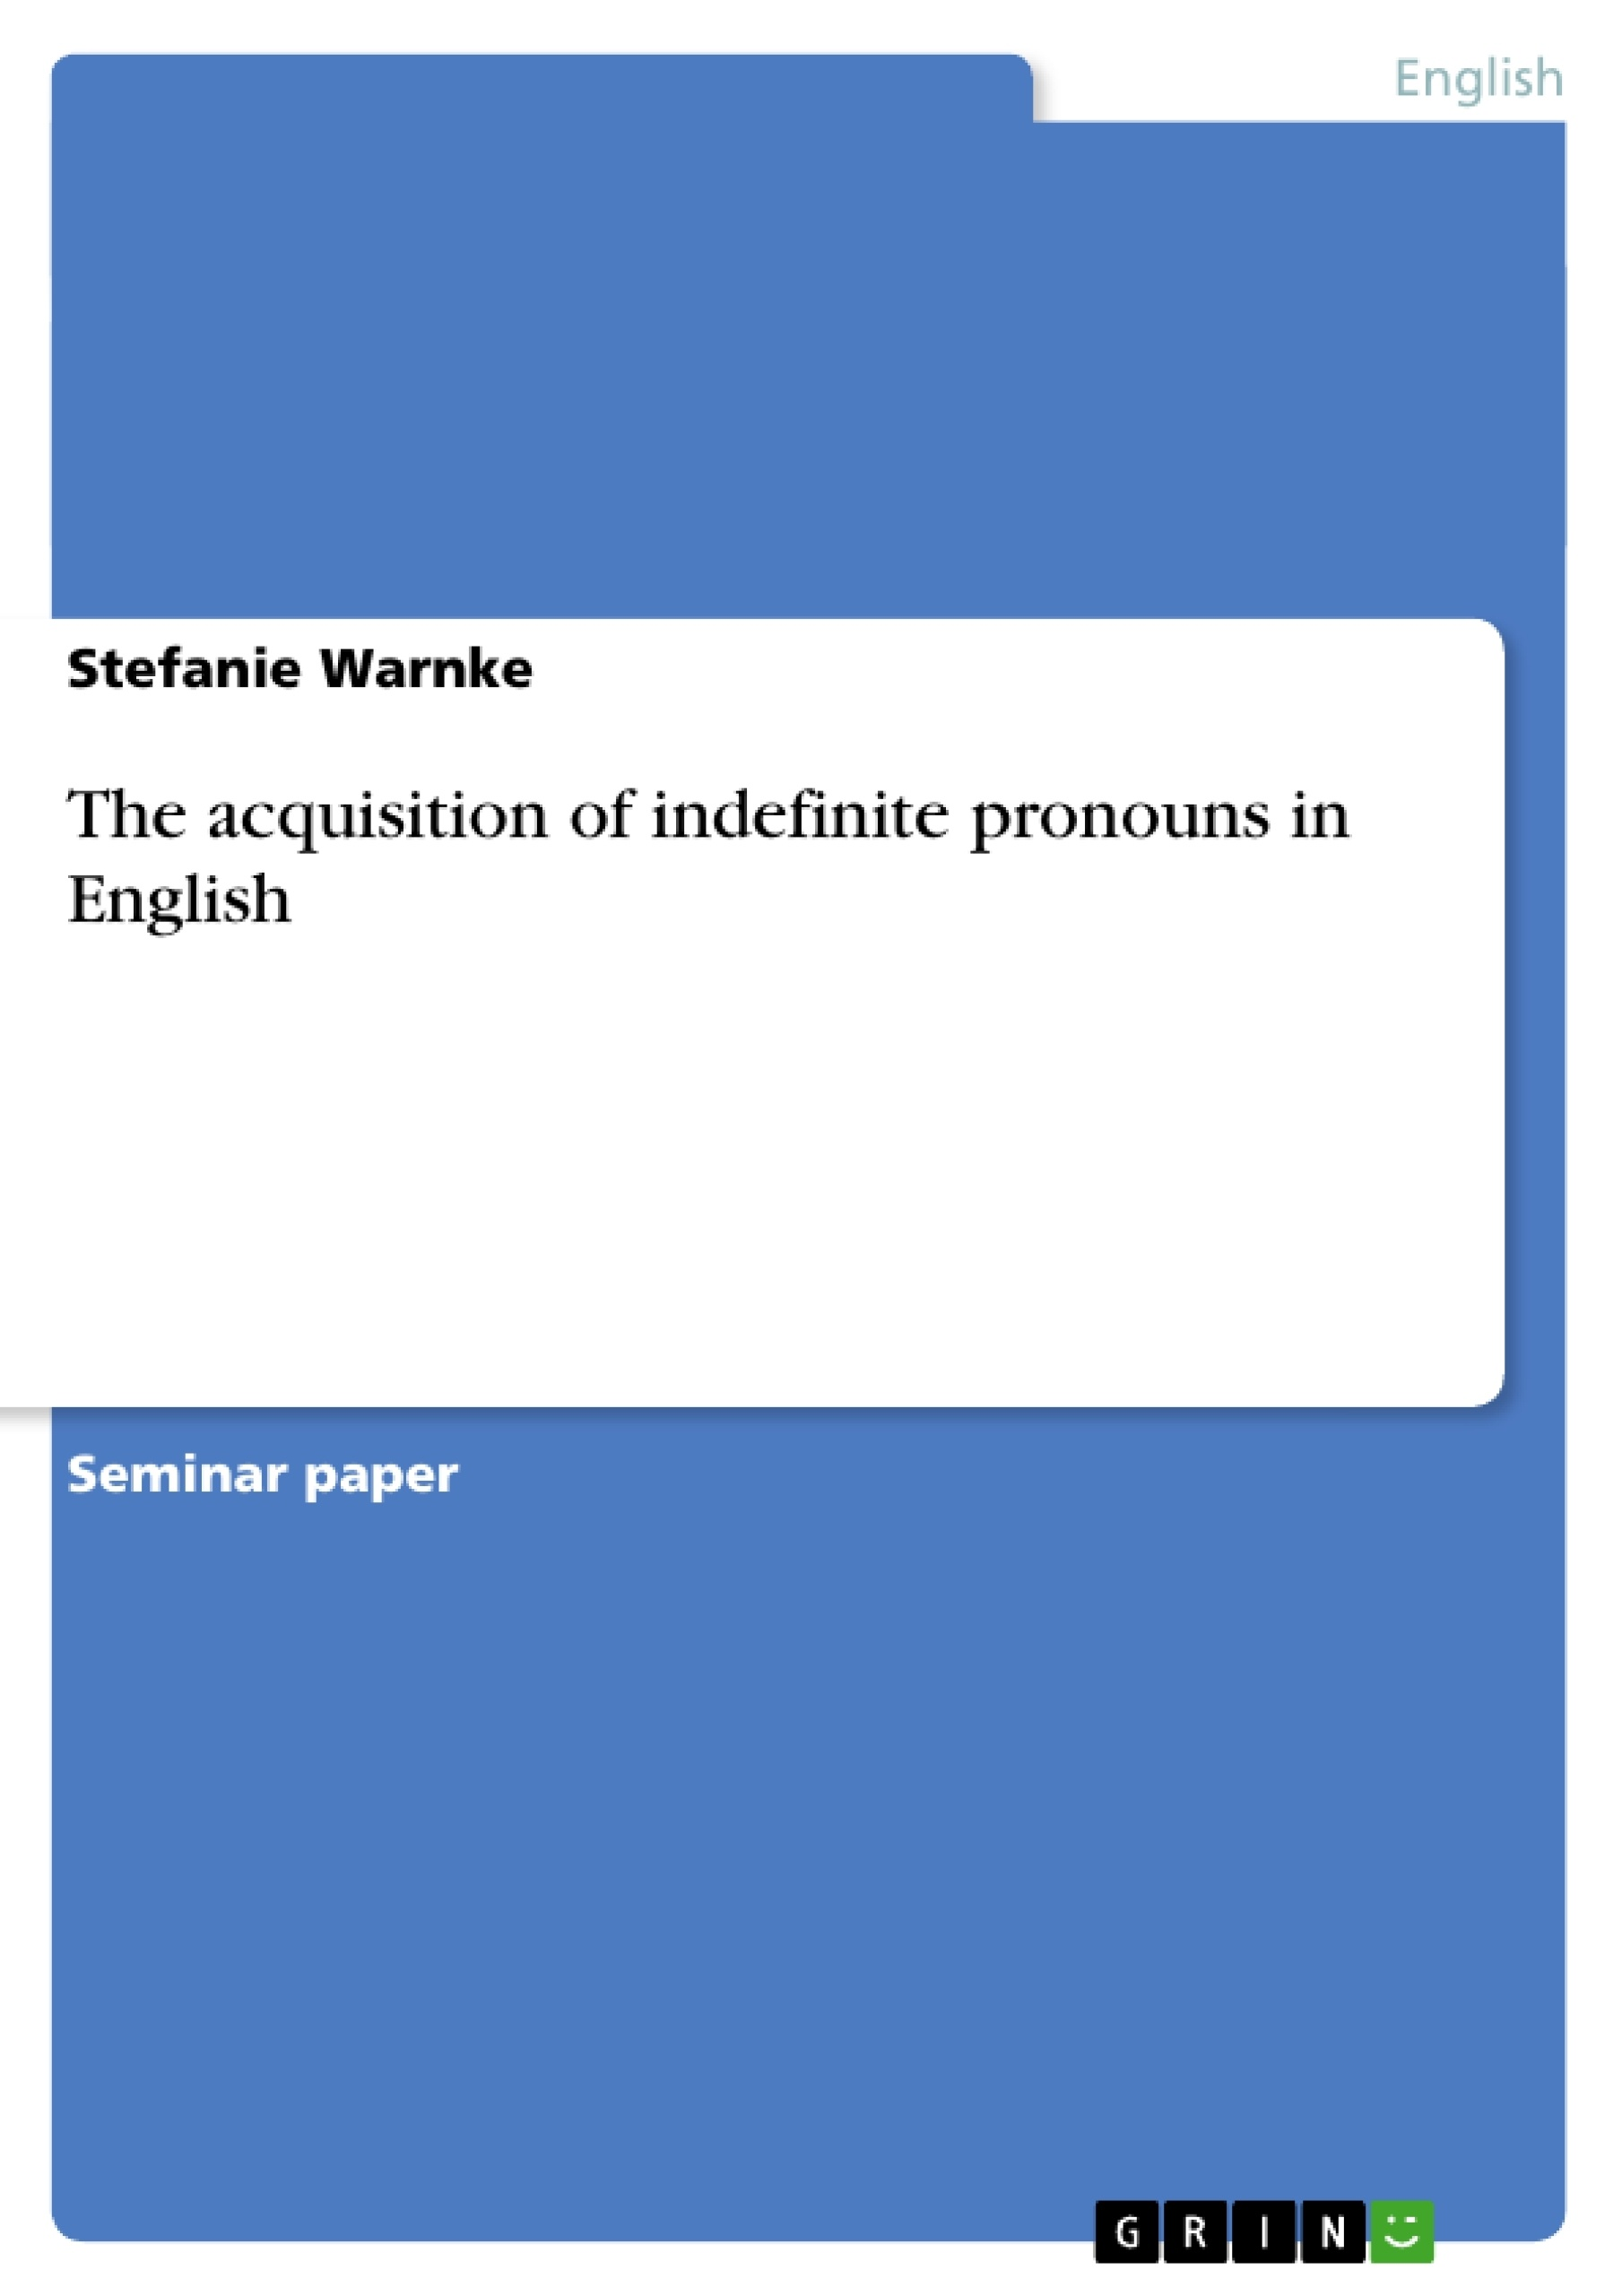 Worksheet Indefinite Pronouns English the acquisition of indefinite pronouns in english publish your upload own papers earn money and win an iphone 7